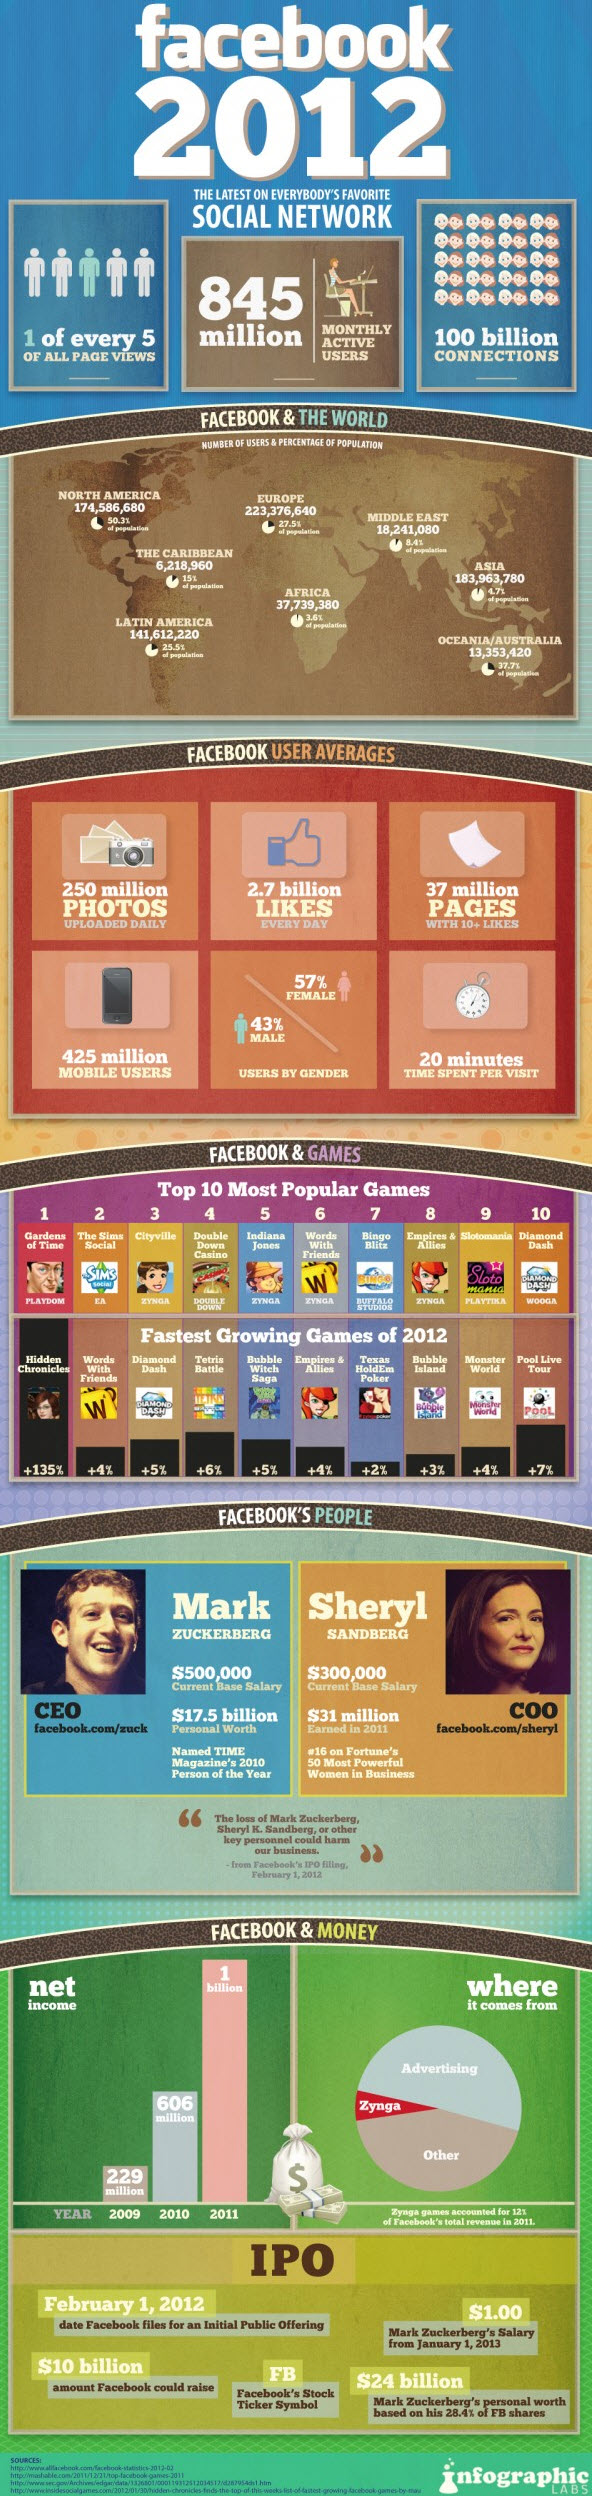 Facebook-facts-figures-and-statistics-2012